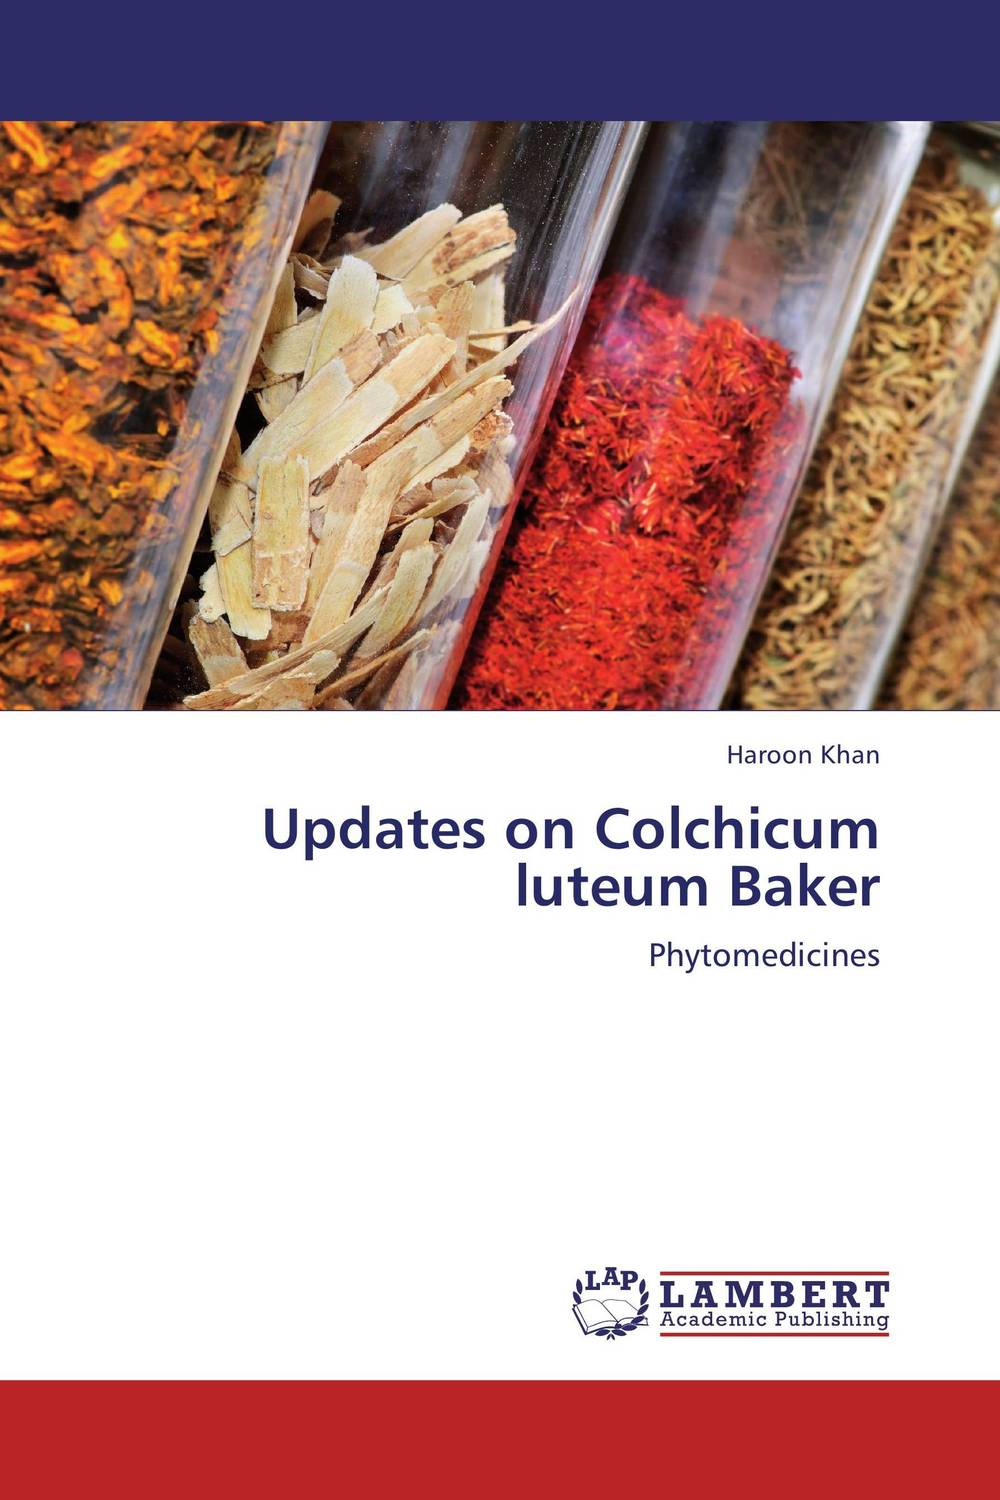 Updates on Colchicum luteum Baker handbook of isolation and characterization of impurities in pharmaceuticals 5